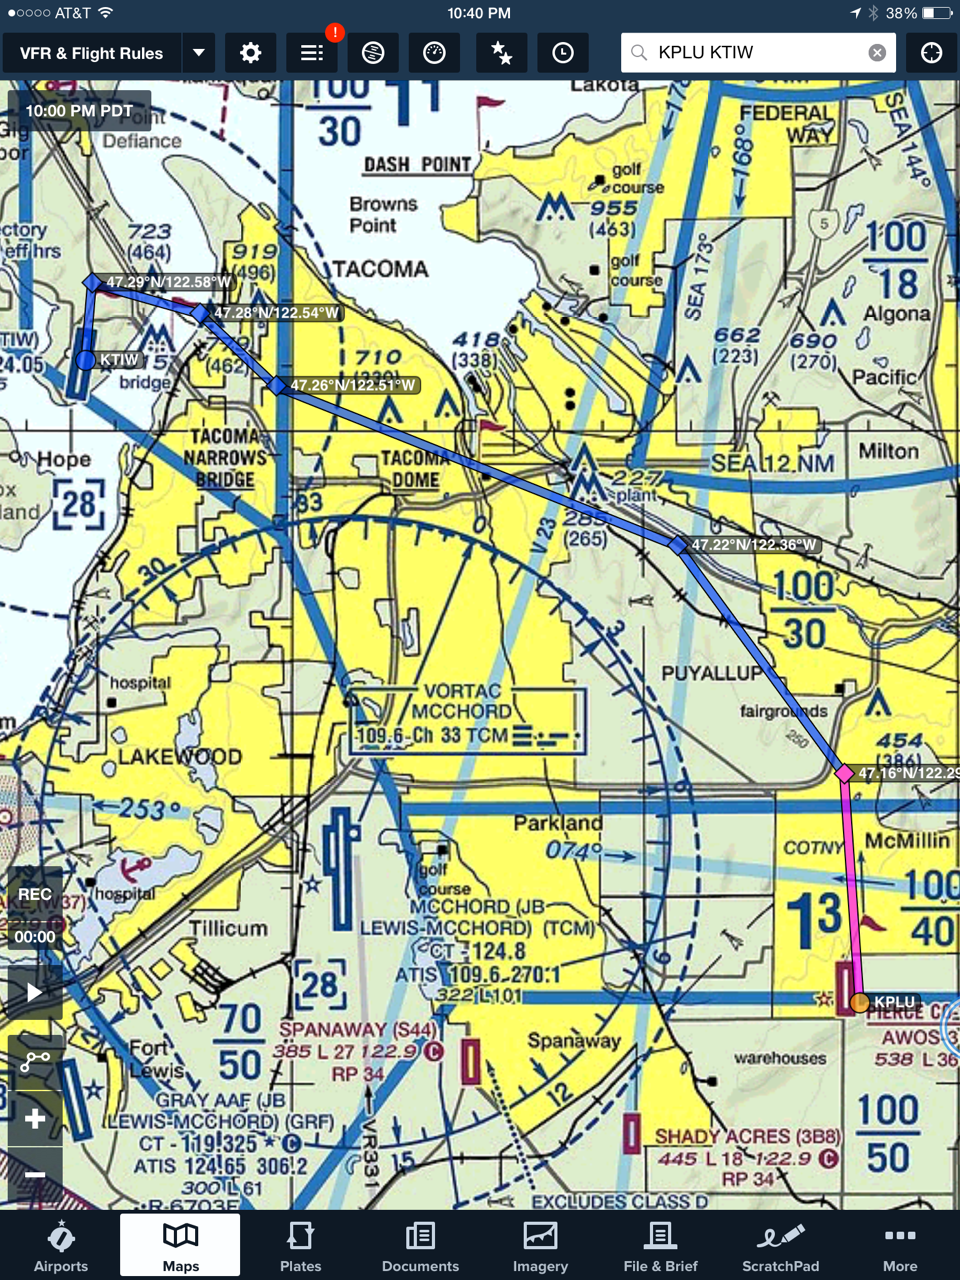 Route in Foreflight from KPLU to KTIW